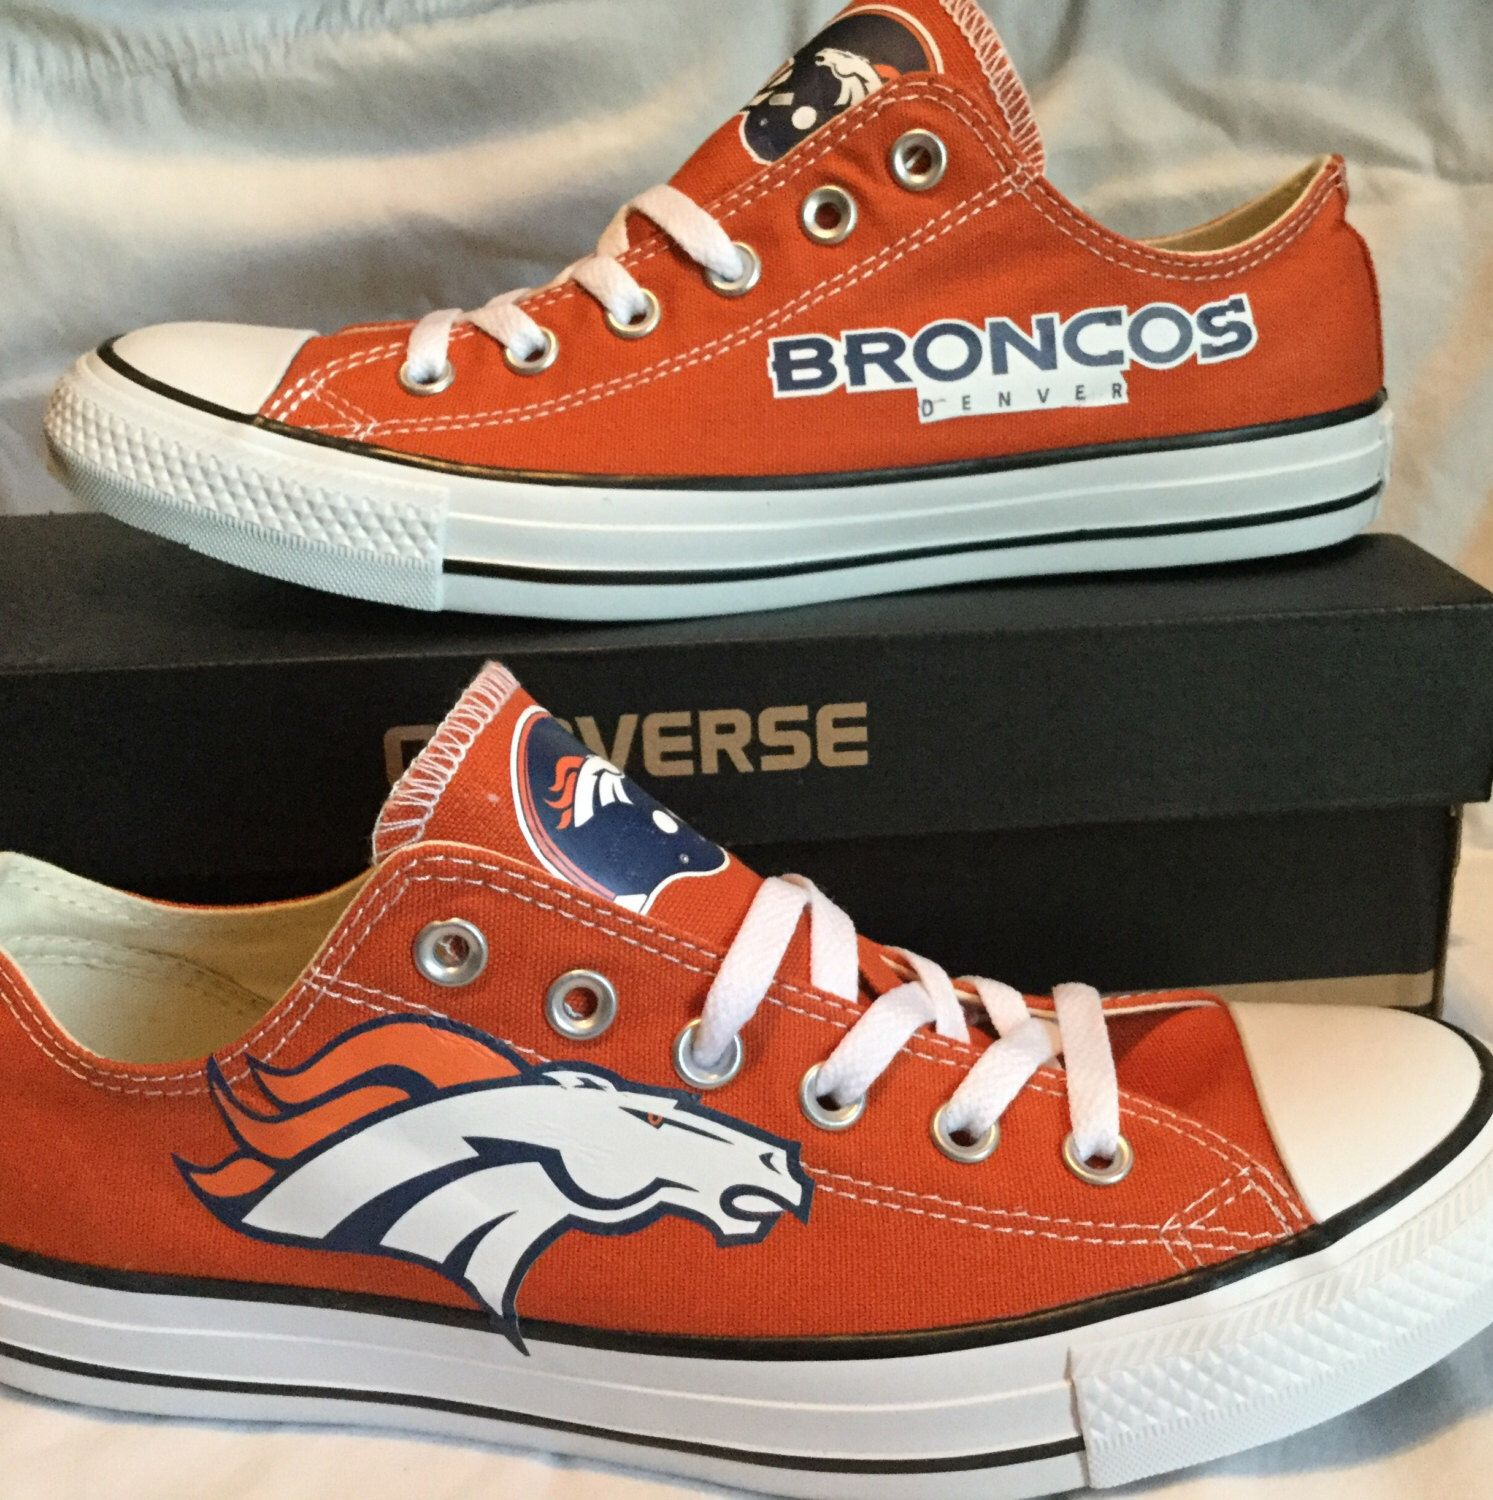 5c1fbec17121 Denver Broncos Converse Chuck Taylor Custom Made Sneakers NFL by  PimpMyKickz on Etsy https